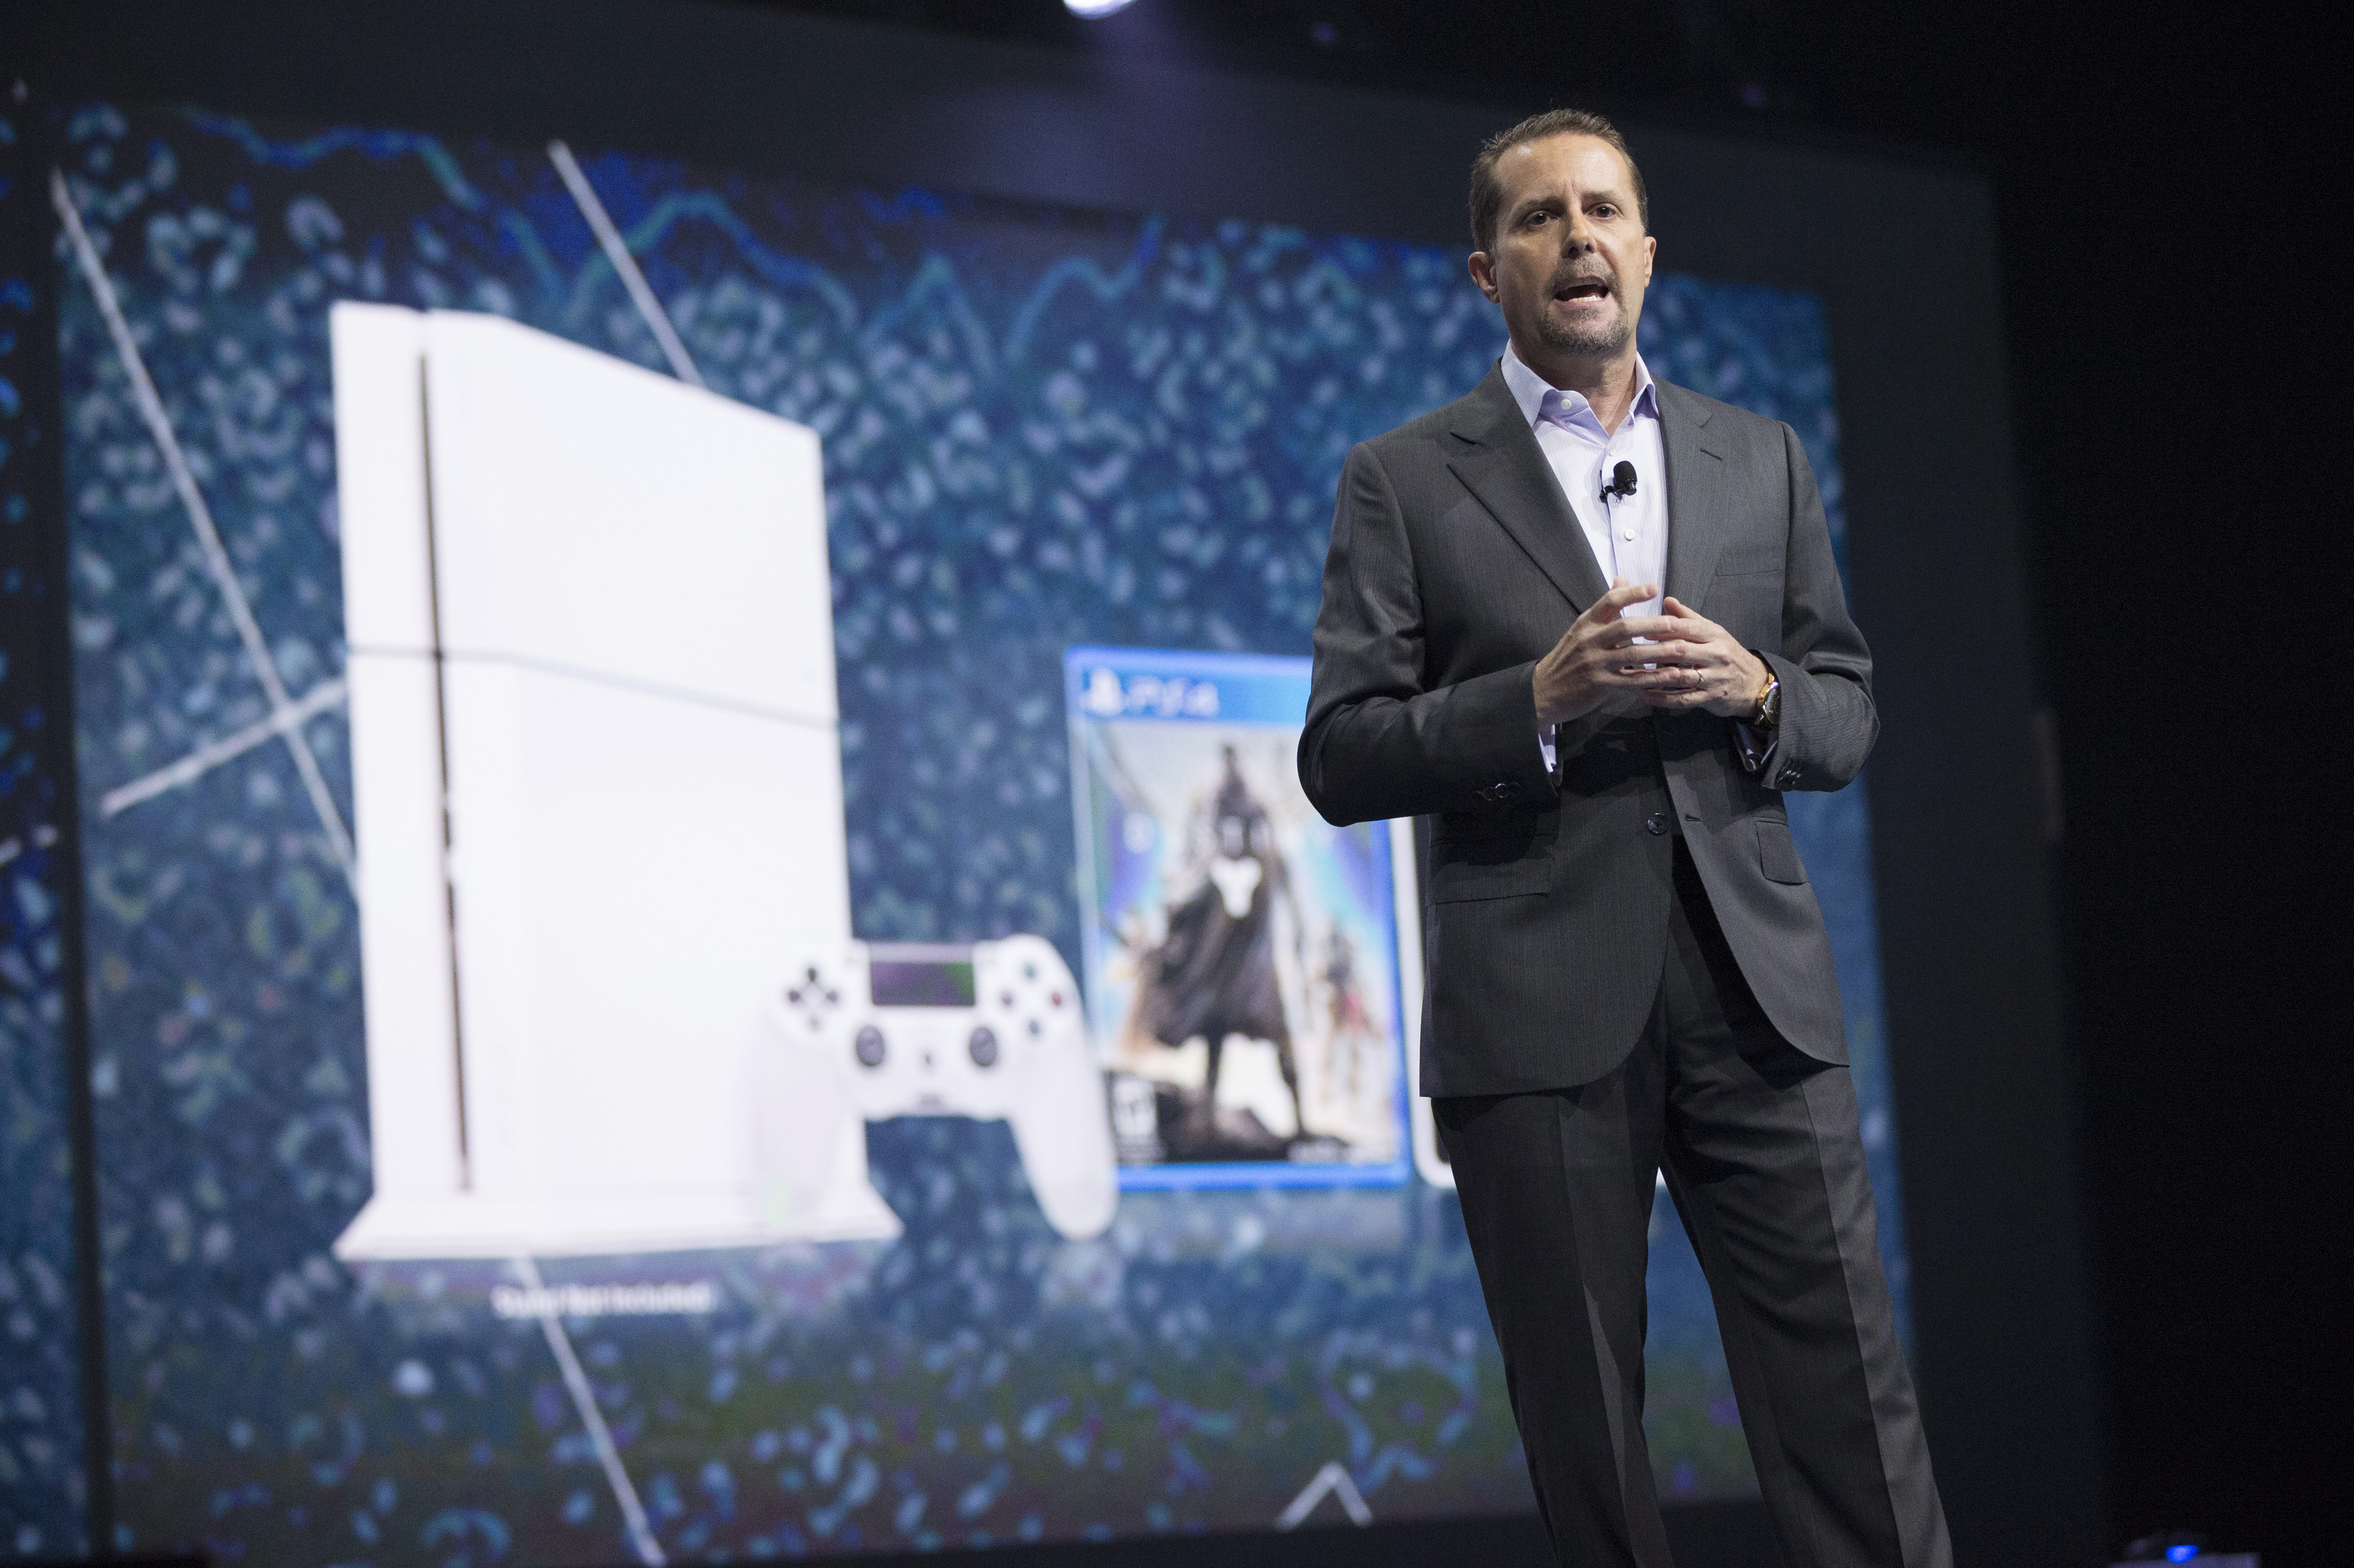 Andrew House, President and Group Chief Executive Officer of Sony Computer Entertainment, presents a white PlayStation 4 during a media briefing before the opening day of the Electronic Entertainment Expo, or E3, at the Memorial Sports Arena in Los Angeles, California June 9, 2014.  REUTERS/Mario Anzuoni  (UNITED STATES - Tags: SCIENCE TECHNOLOGY BUSINESS SOCIETY)